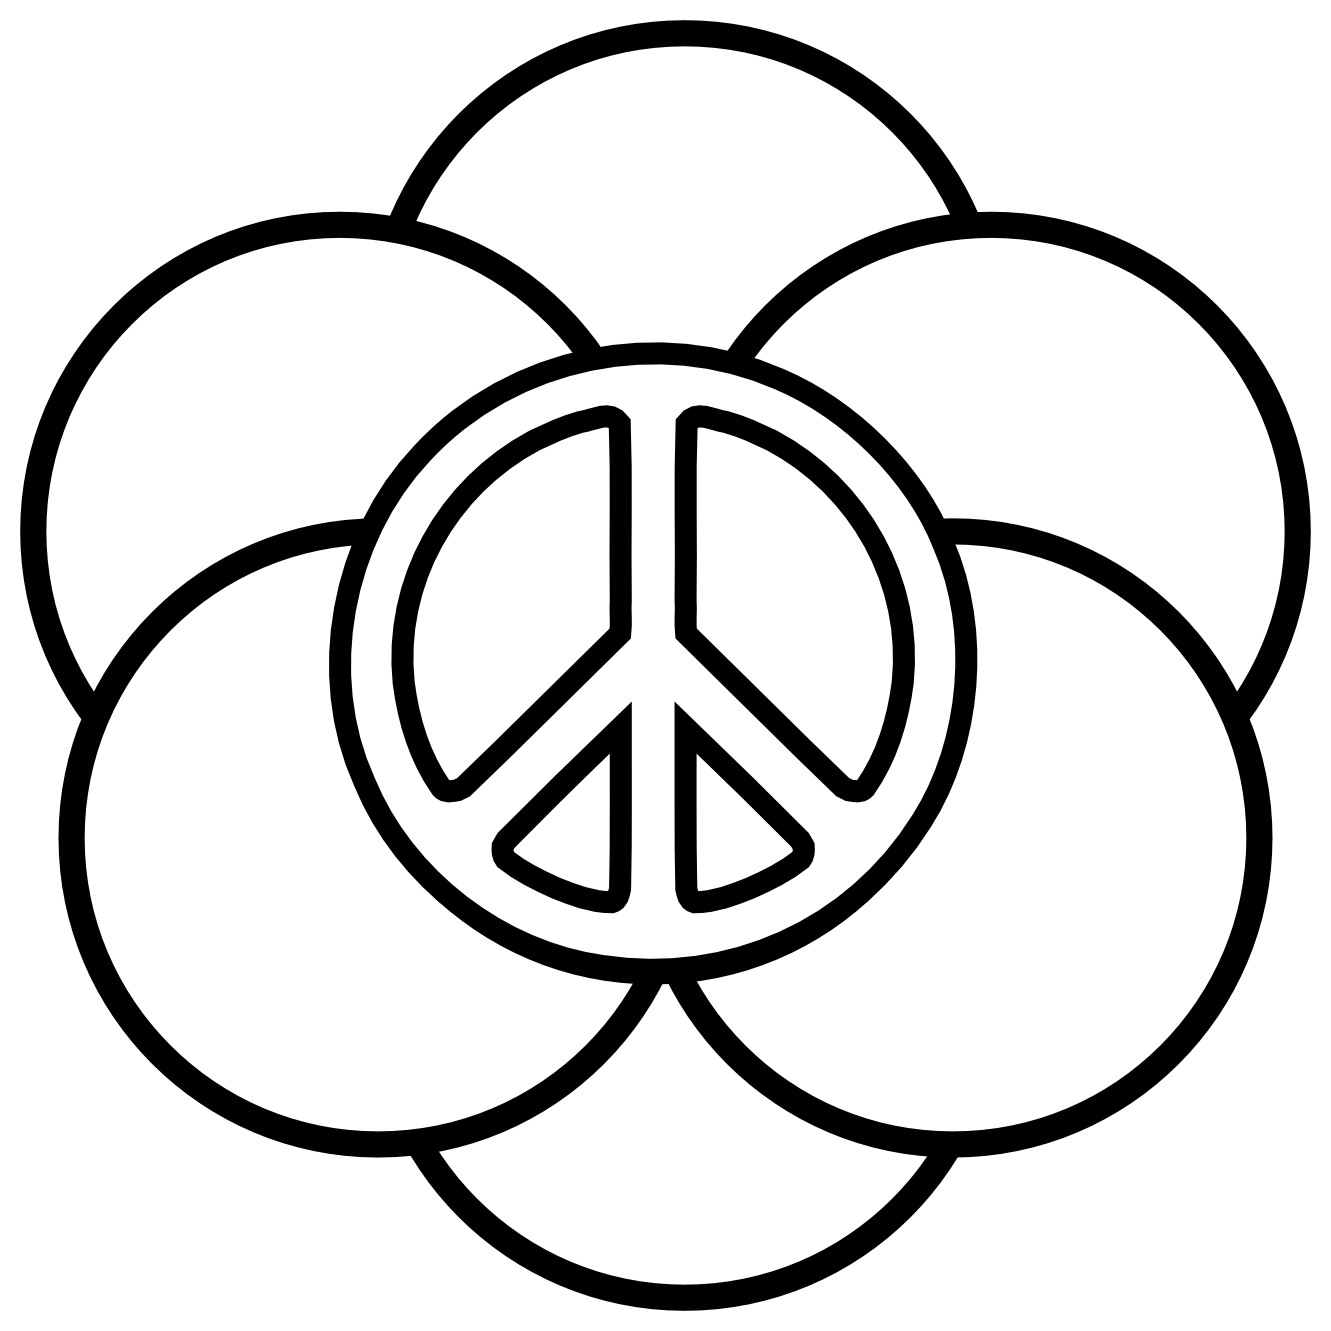 peace logo coloring pages - photo#7